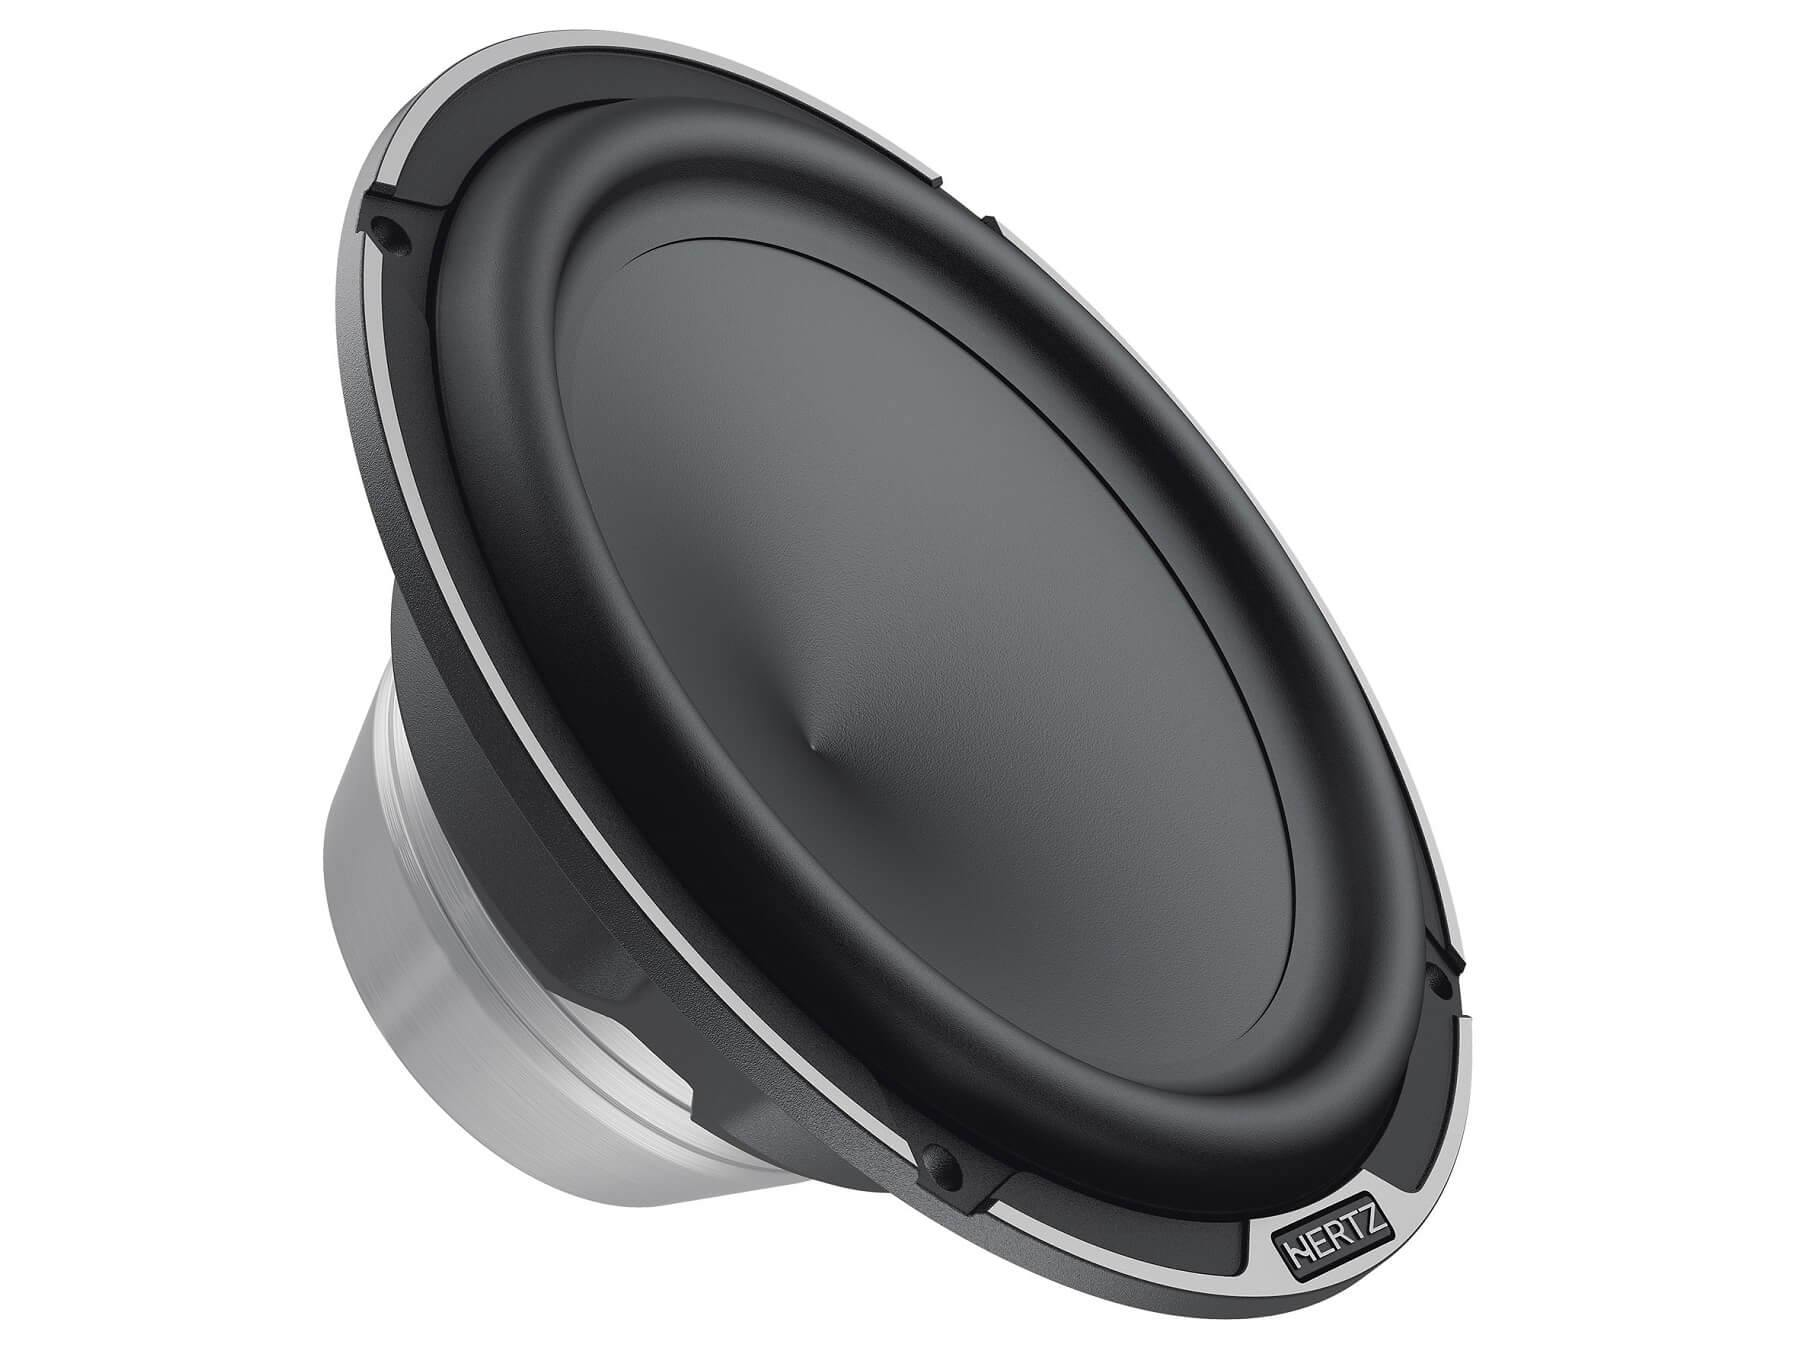 Hertz Mille Legend ML 1650.3 - Car Audio Woofer